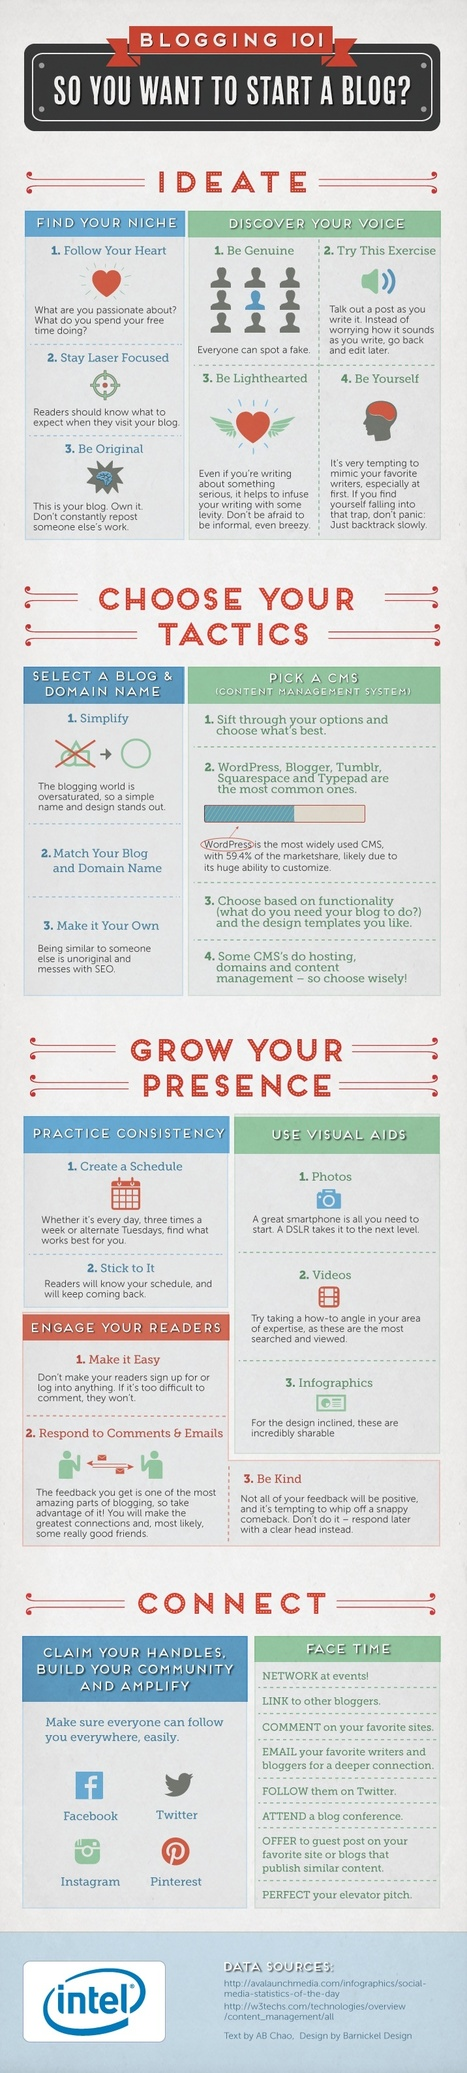 So You Want To Start A Blog? (Infographic) | Technology Education | Scoop.it